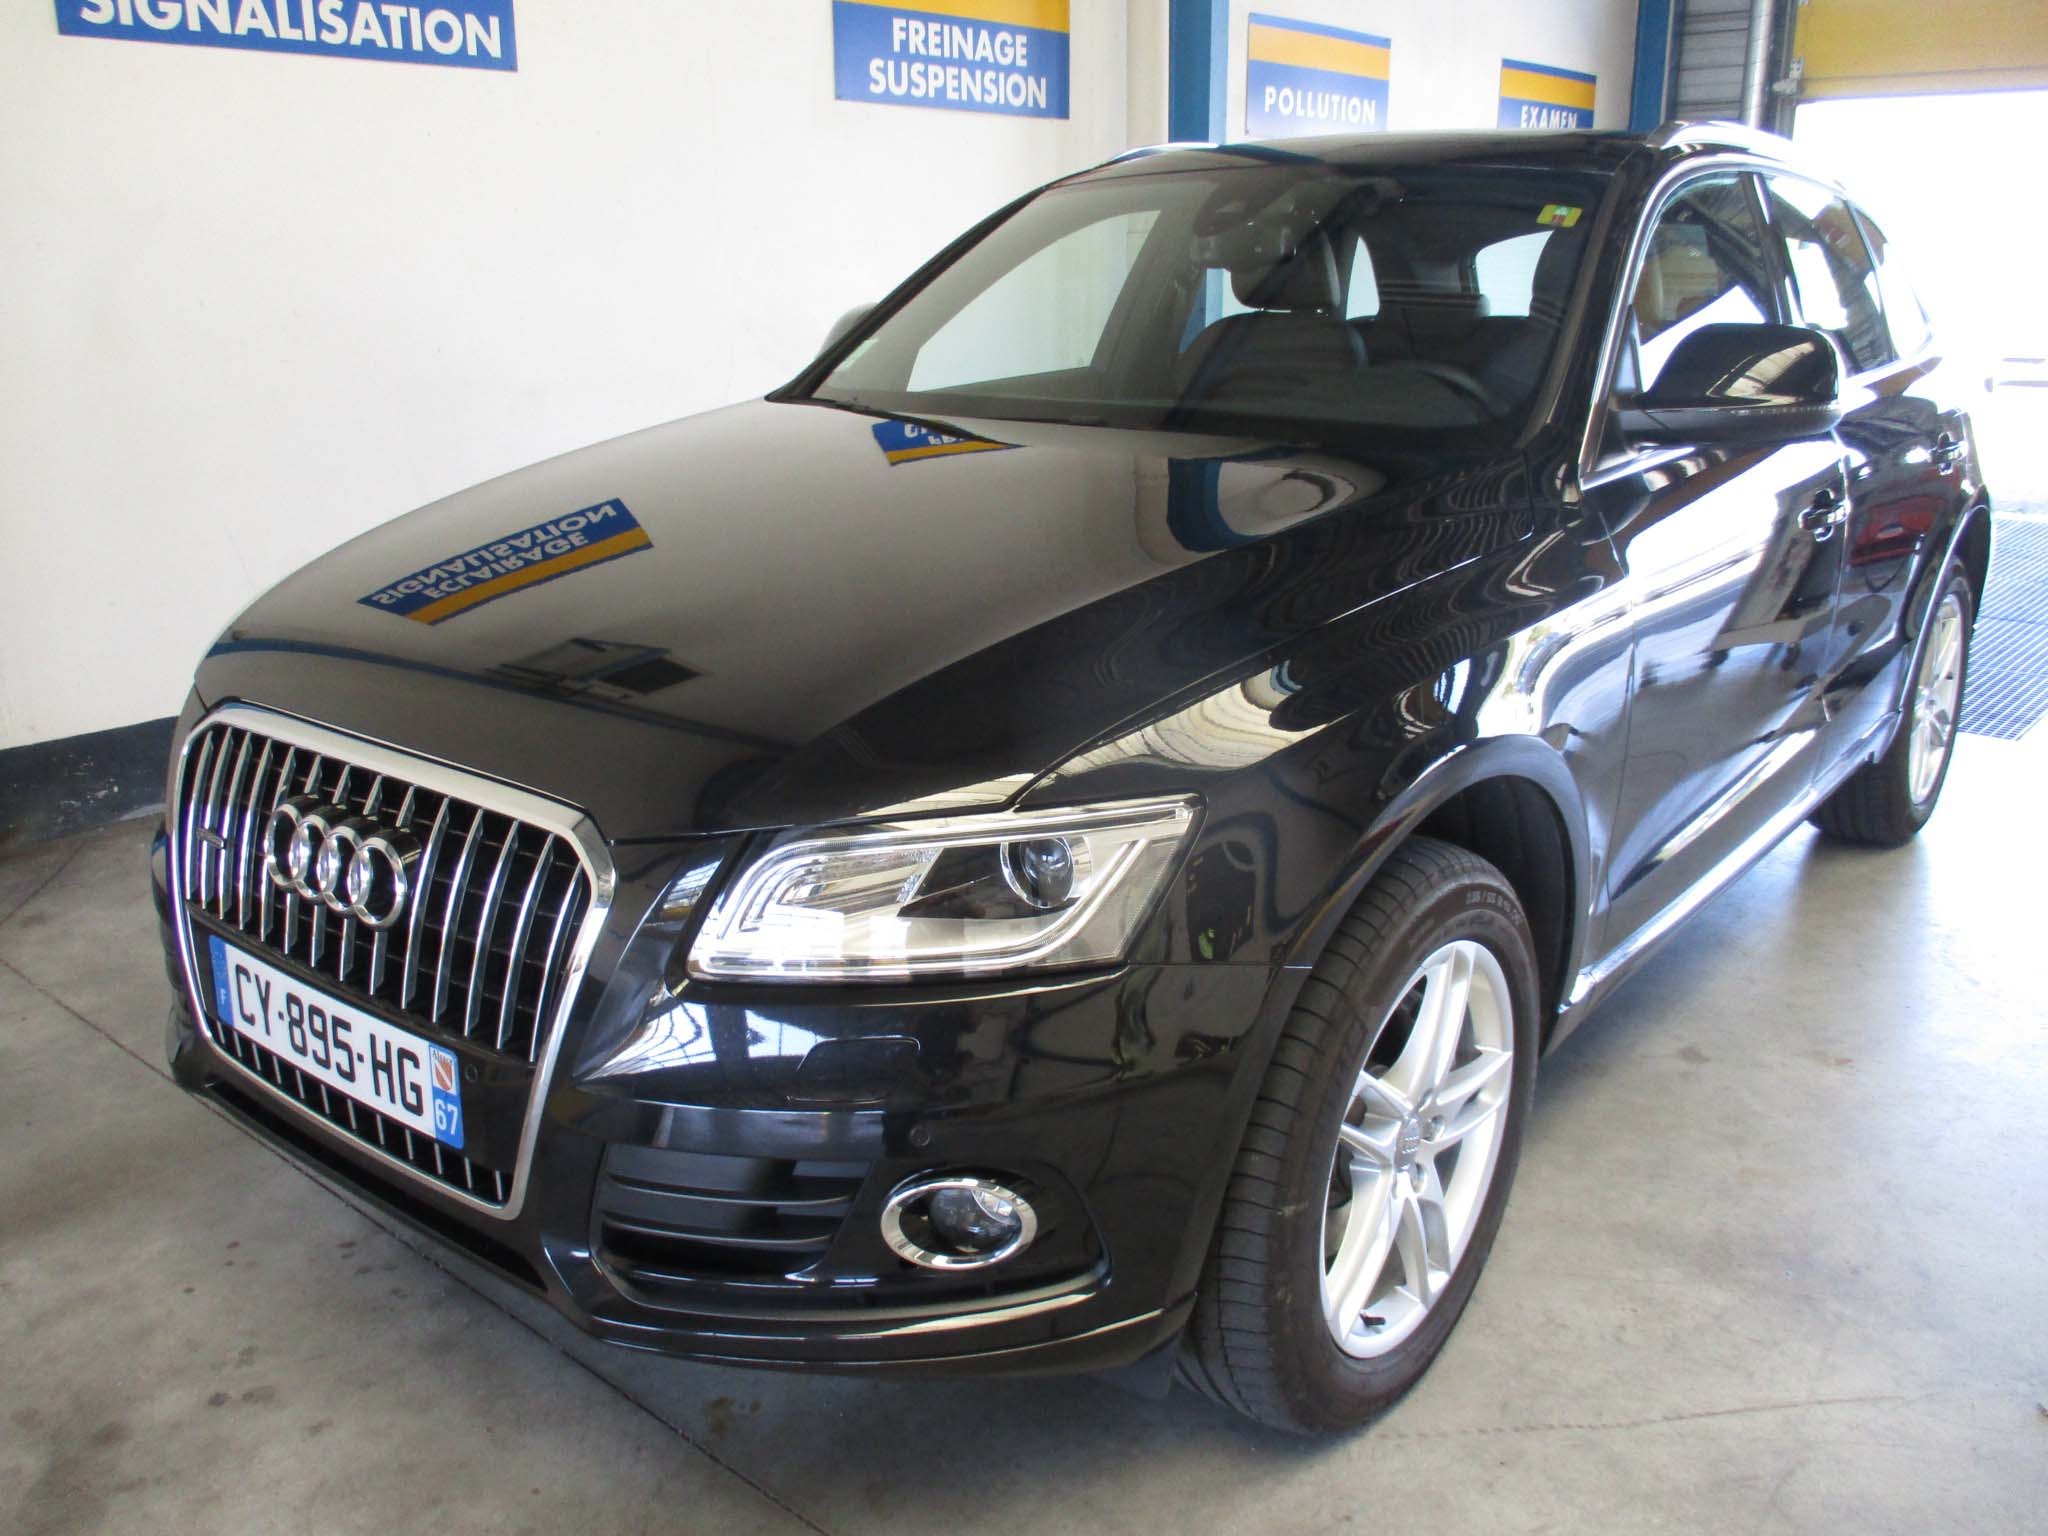 voiture occasion audi q5 labellis e vendre truchtersheim ref 550. Black Bedroom Furniture Sets. Home Design Ideas